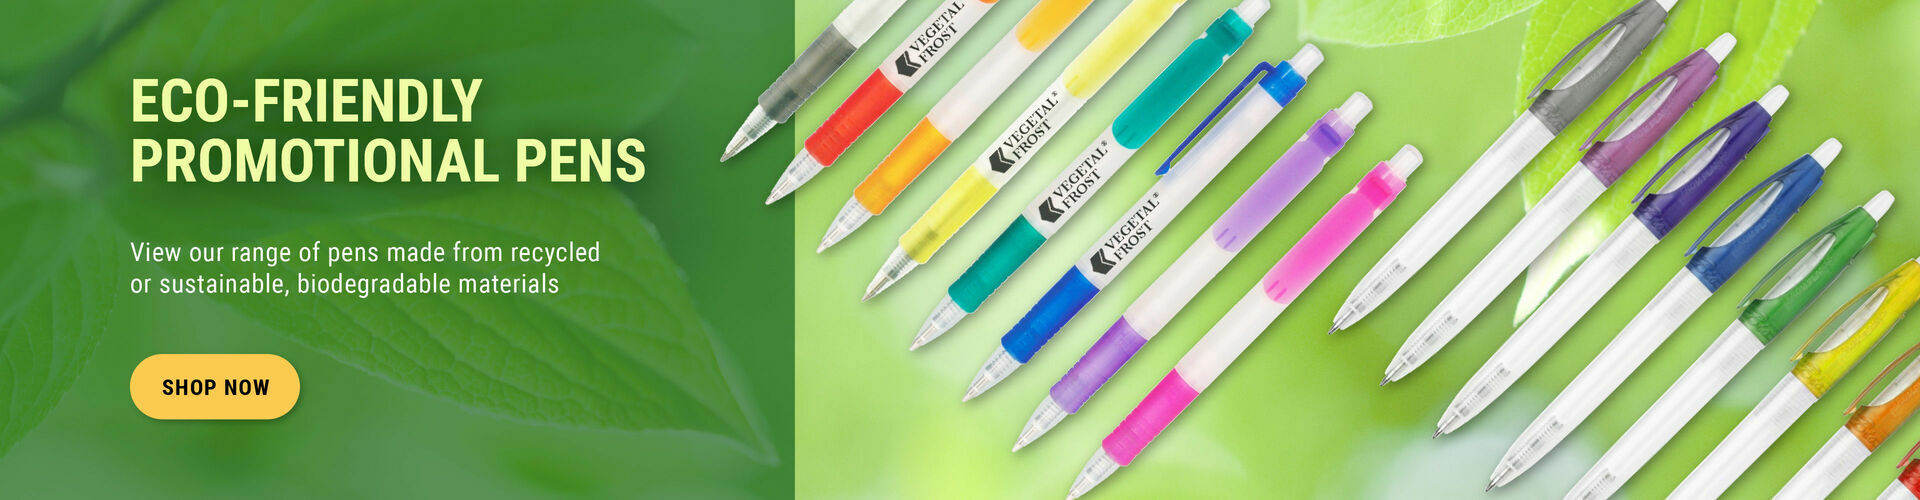 Eco friendly pens